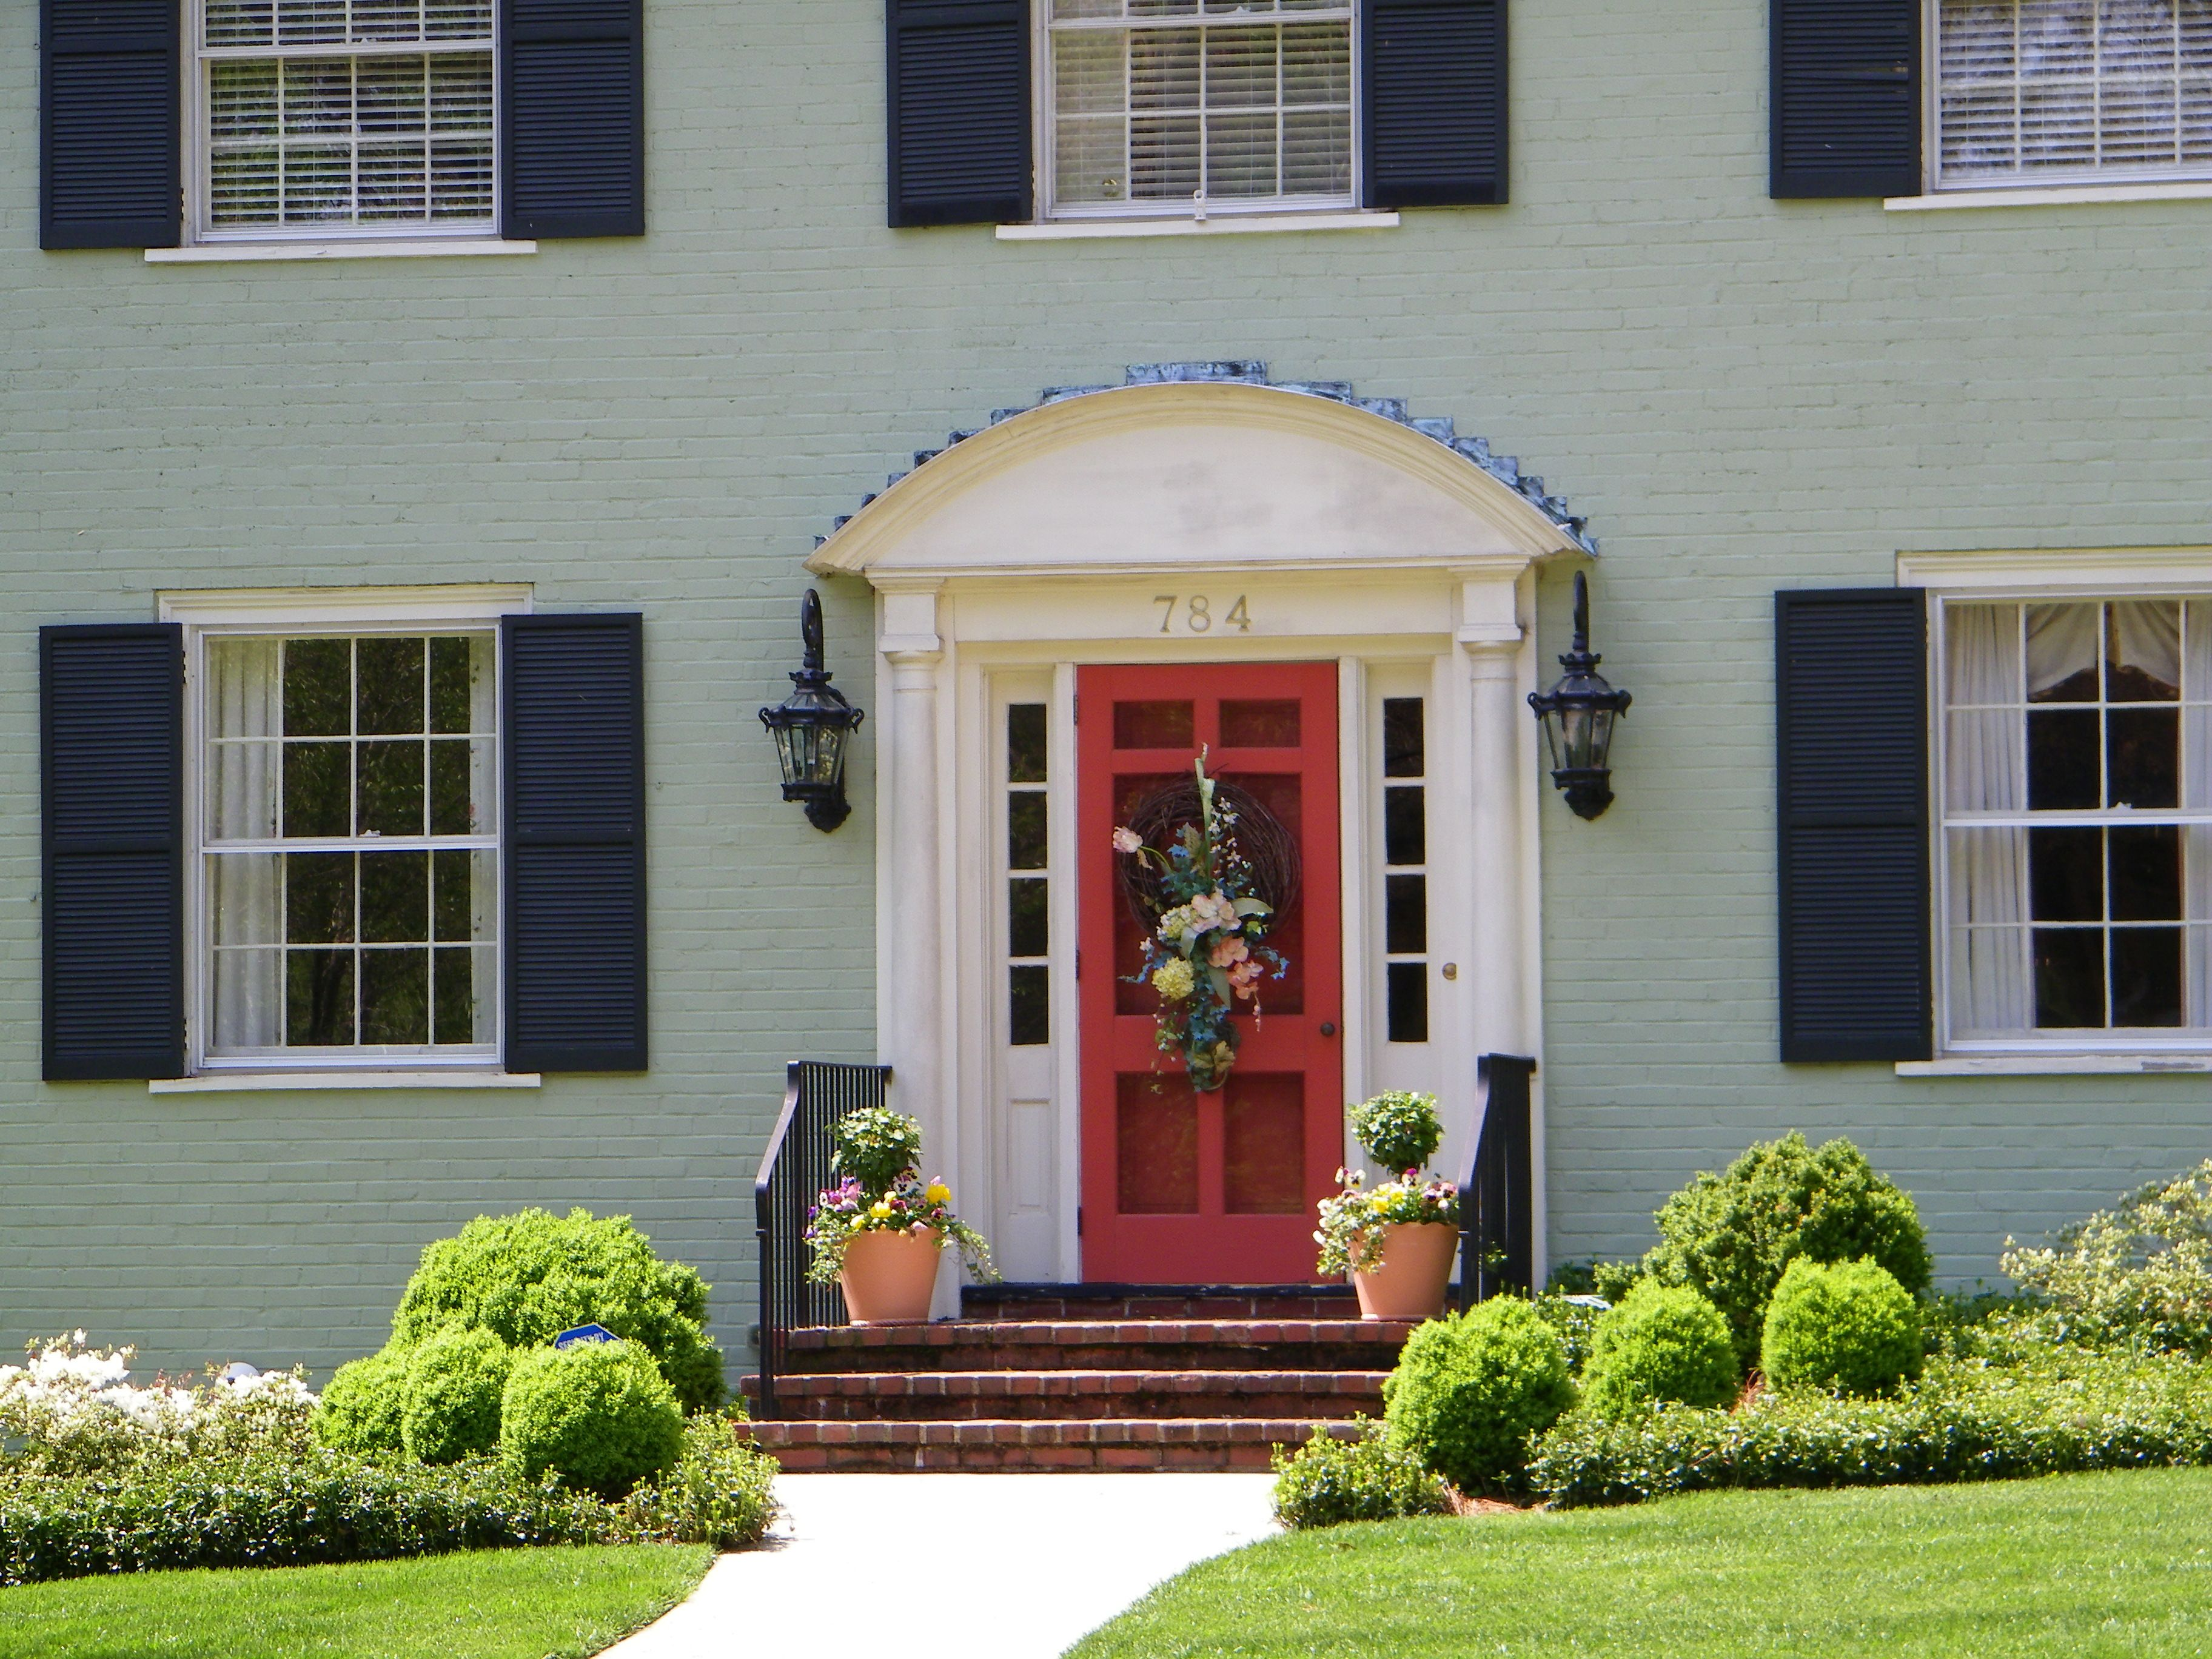 Front door colors for light gray house - Color Options For Brick Houses Making Lemonade From The Current Lemon